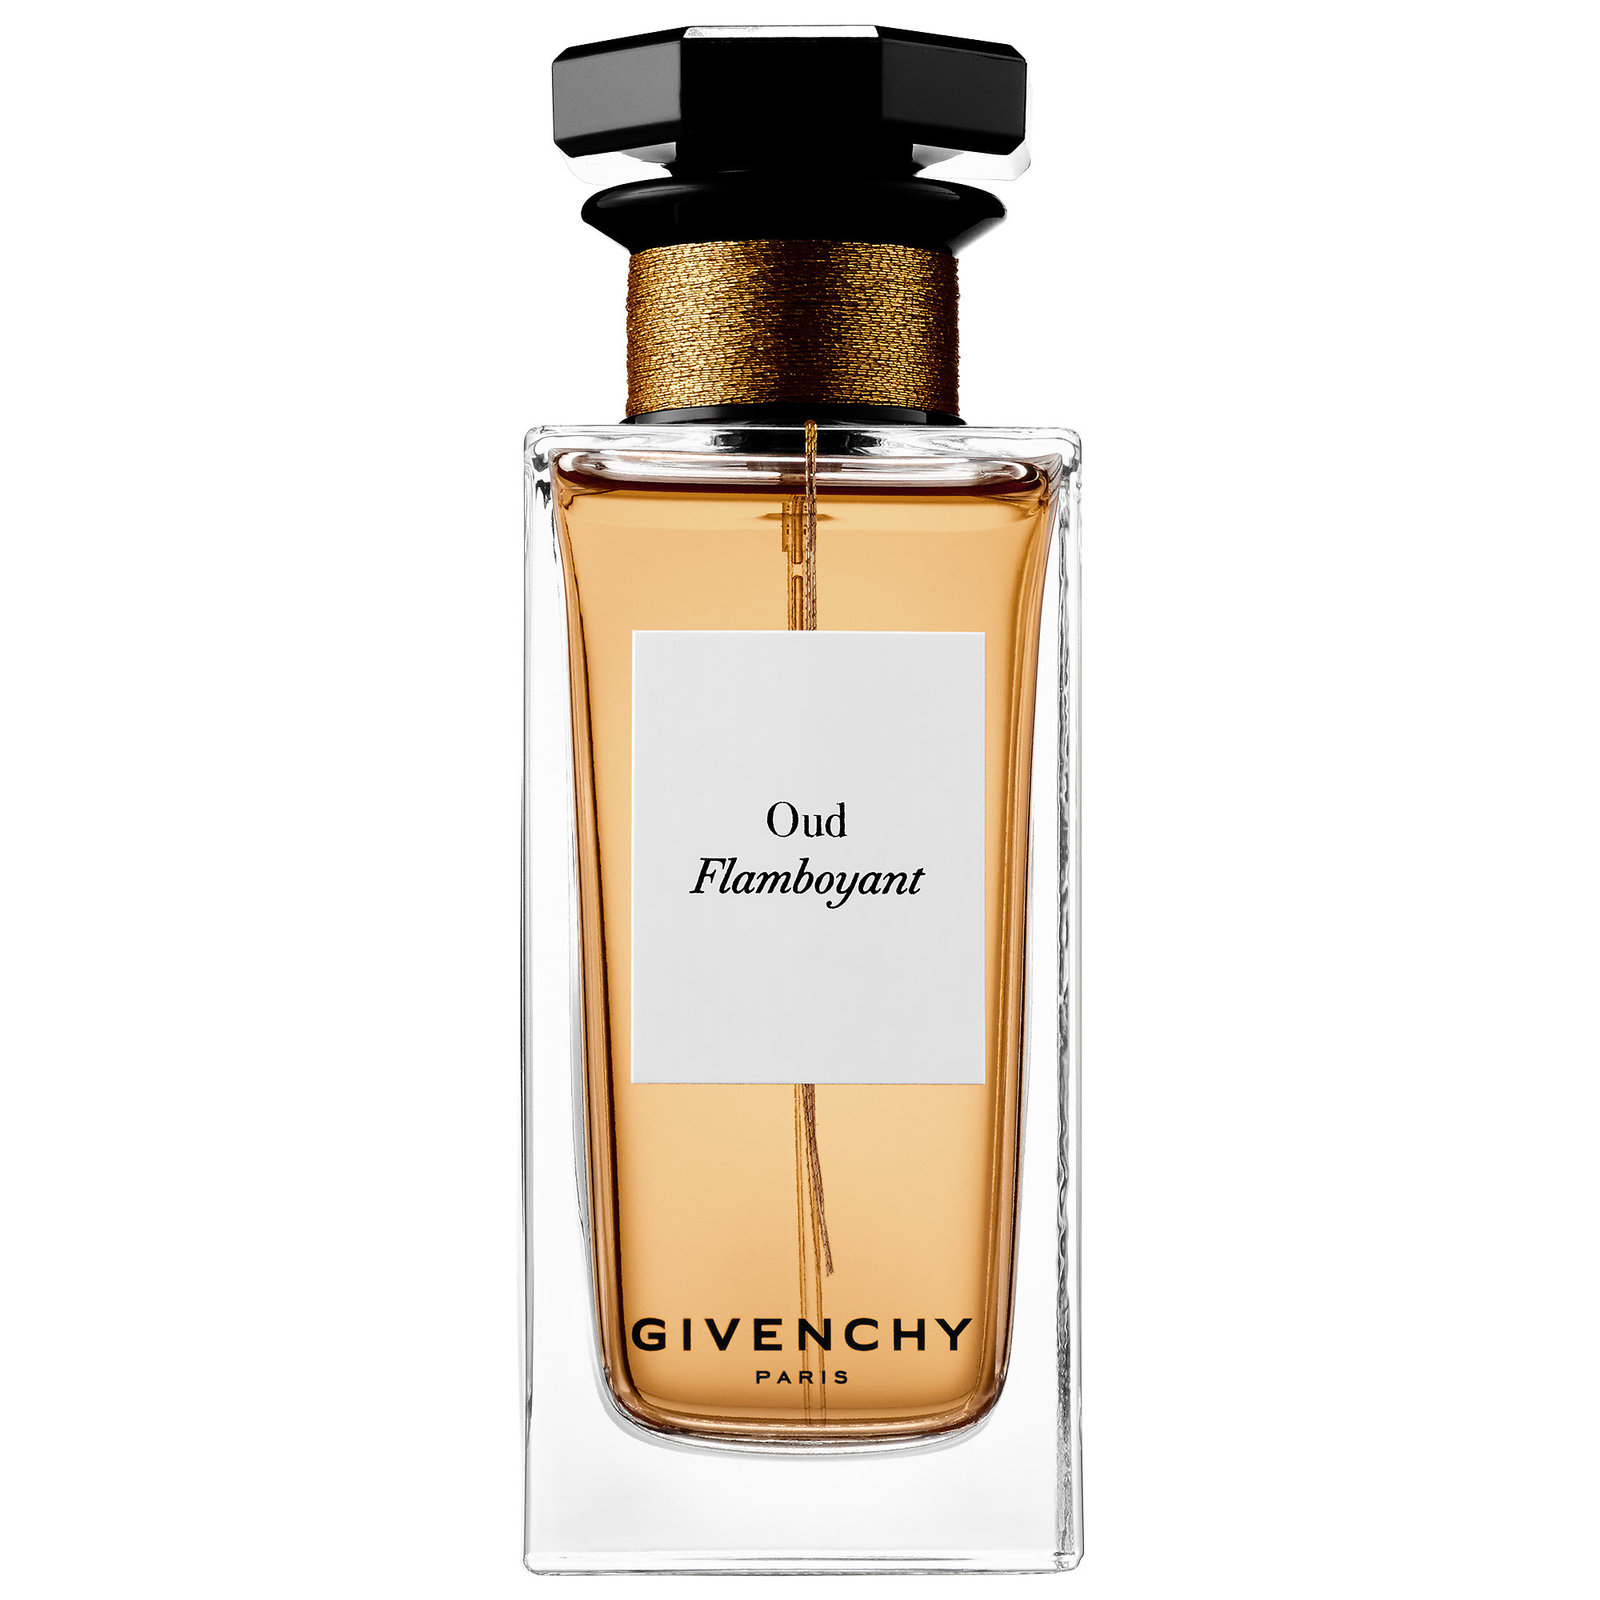 OUD FLAMBOYANT by GIVENCHY 5ml Travel Spray Perfume Labdanum Leather Aoud